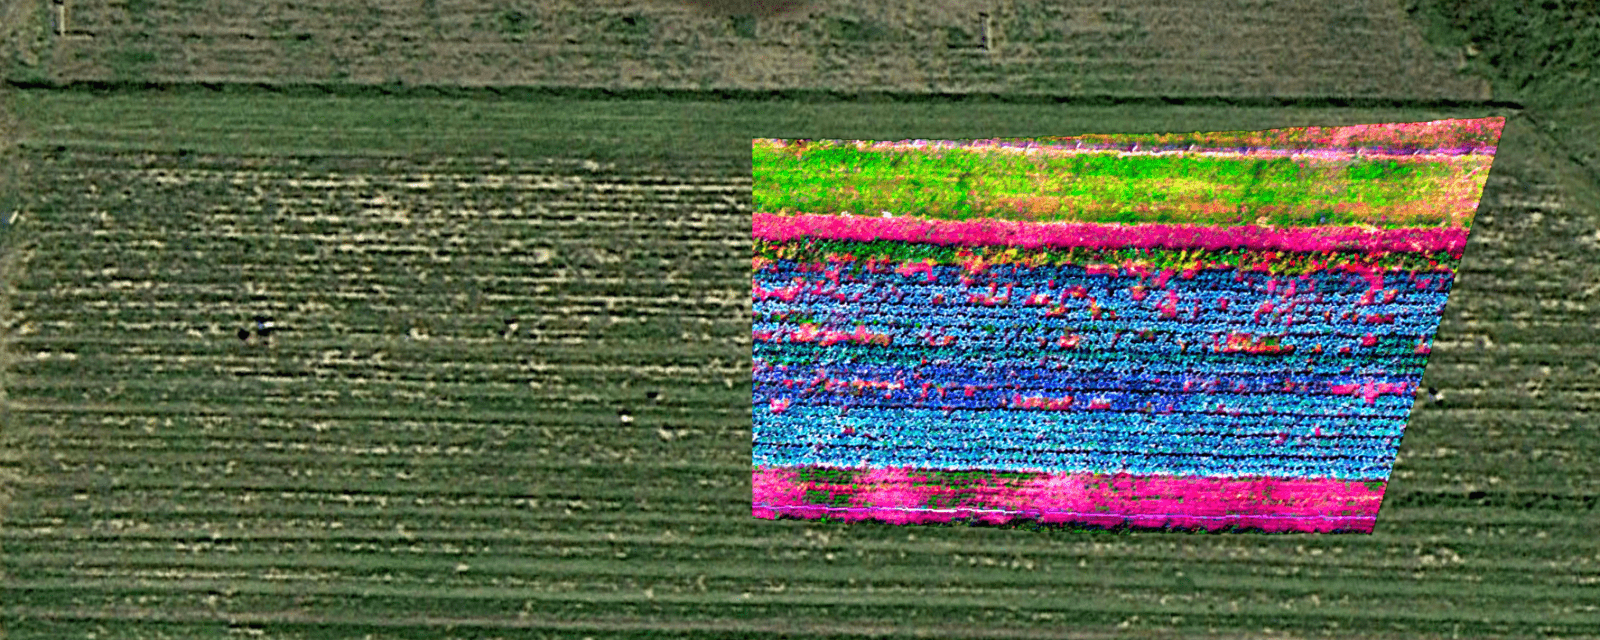 Hyperspectral Remote Sensing Data of Agriculture